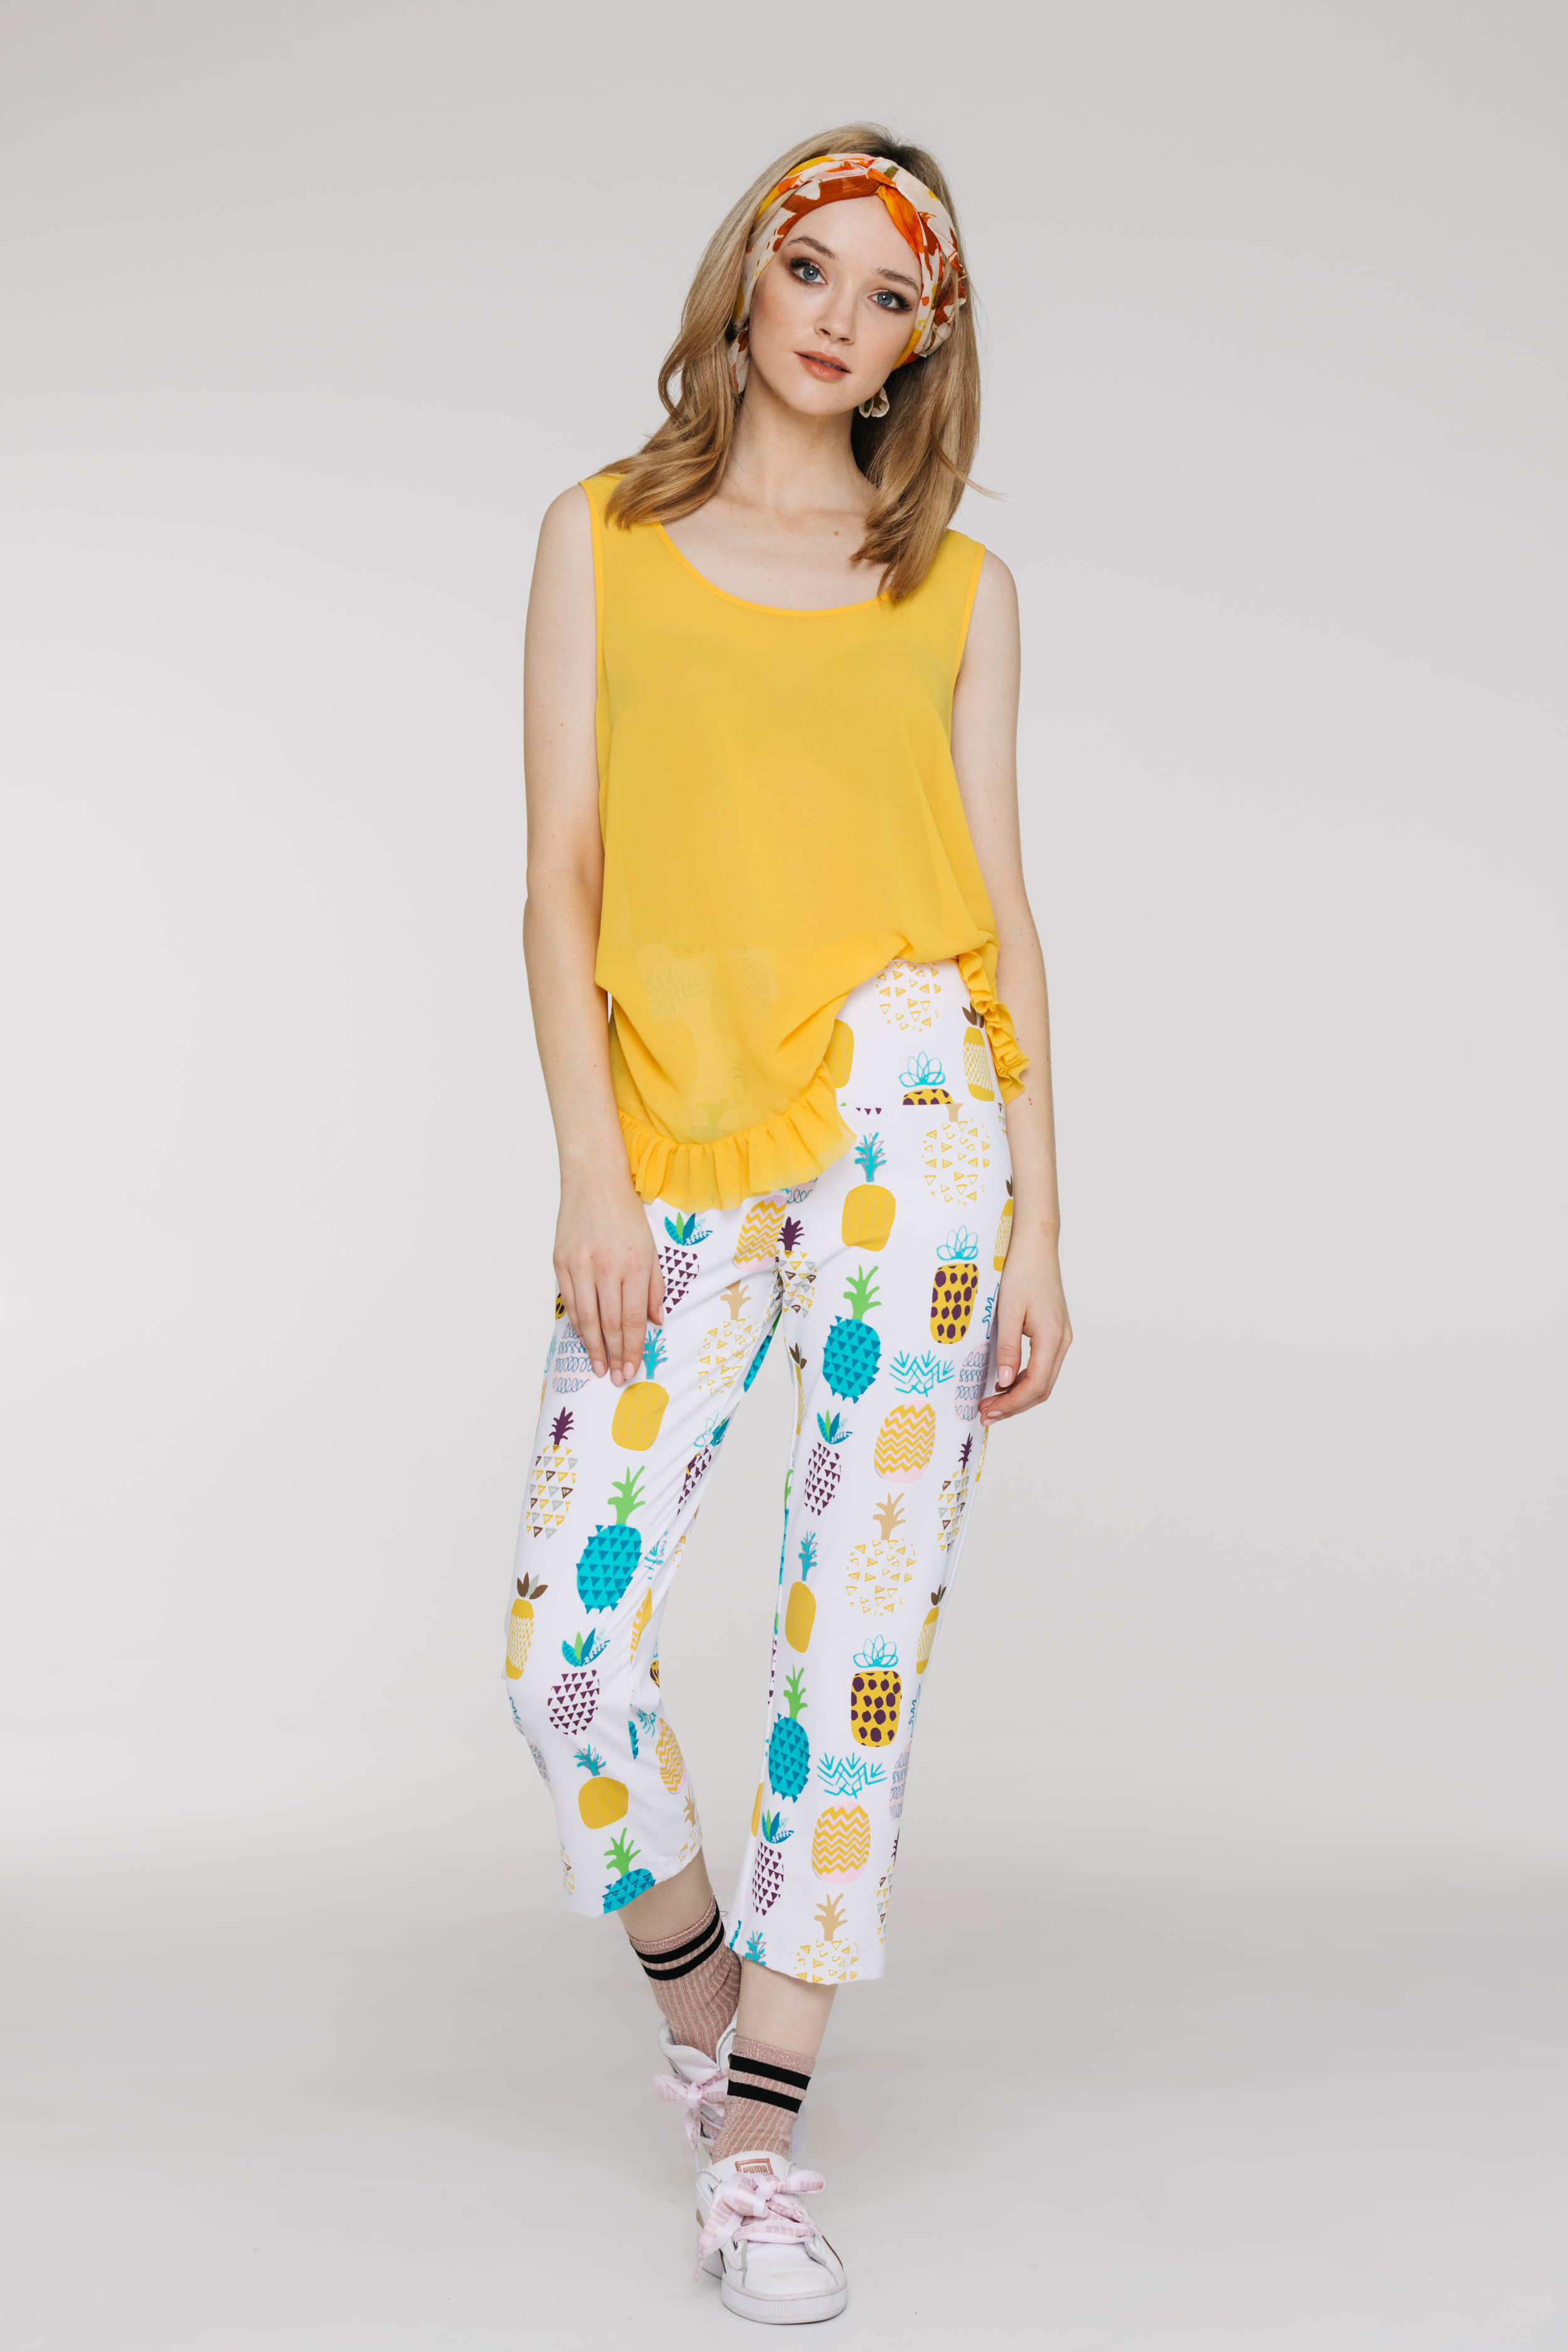 Frilly Singlet 6465P Yellow, Pilazzo Pant 3432P Pina Colada